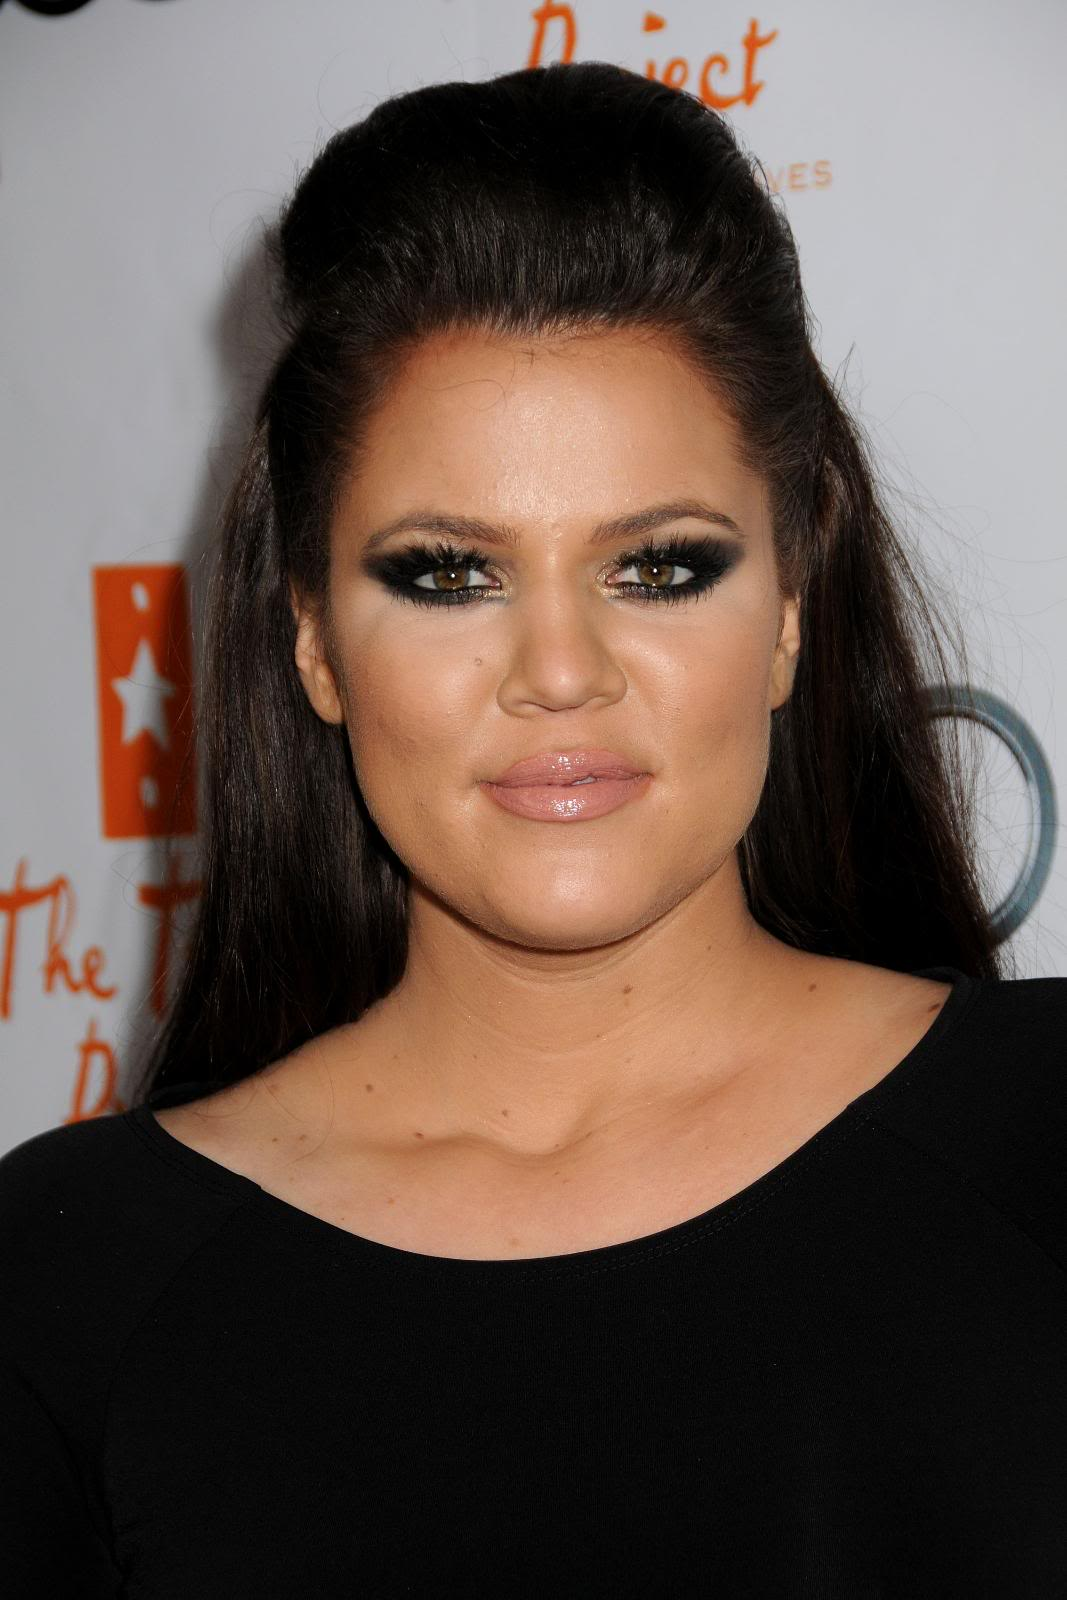 Hairstyles-khloe-kardashian-photos-pictures-images+%285%29.jpg